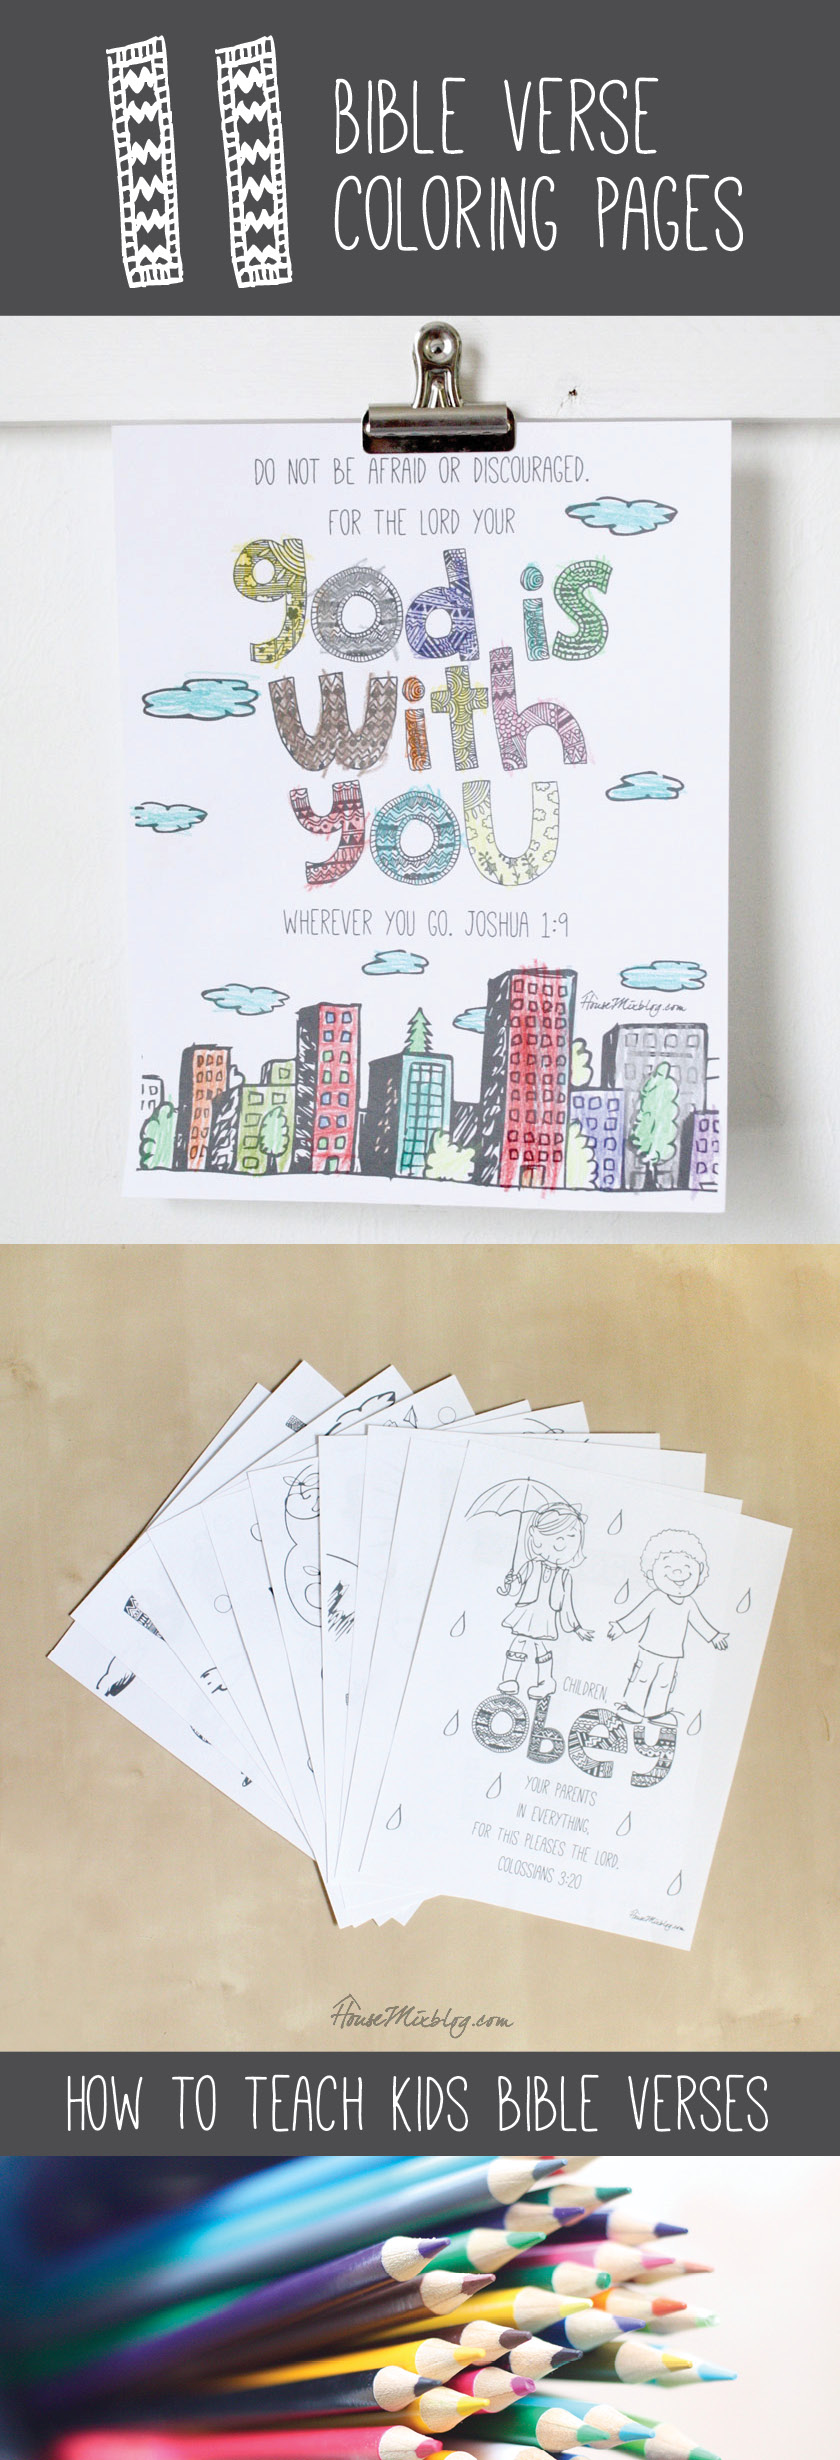 11 Bible verse coloring pages. How to teach kids to memorize scripture.